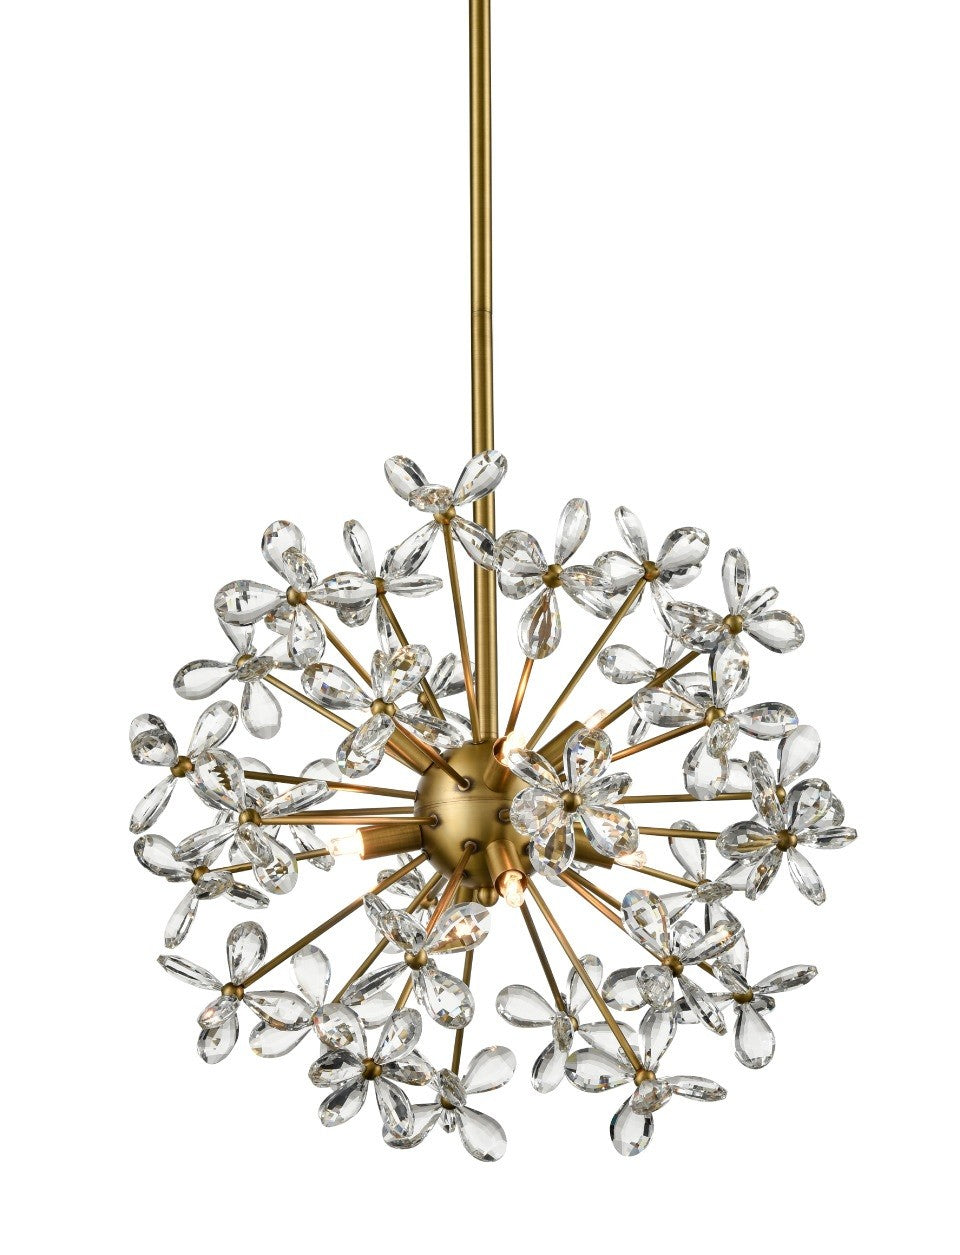 Zeev Adelle Contemporary Chandelier